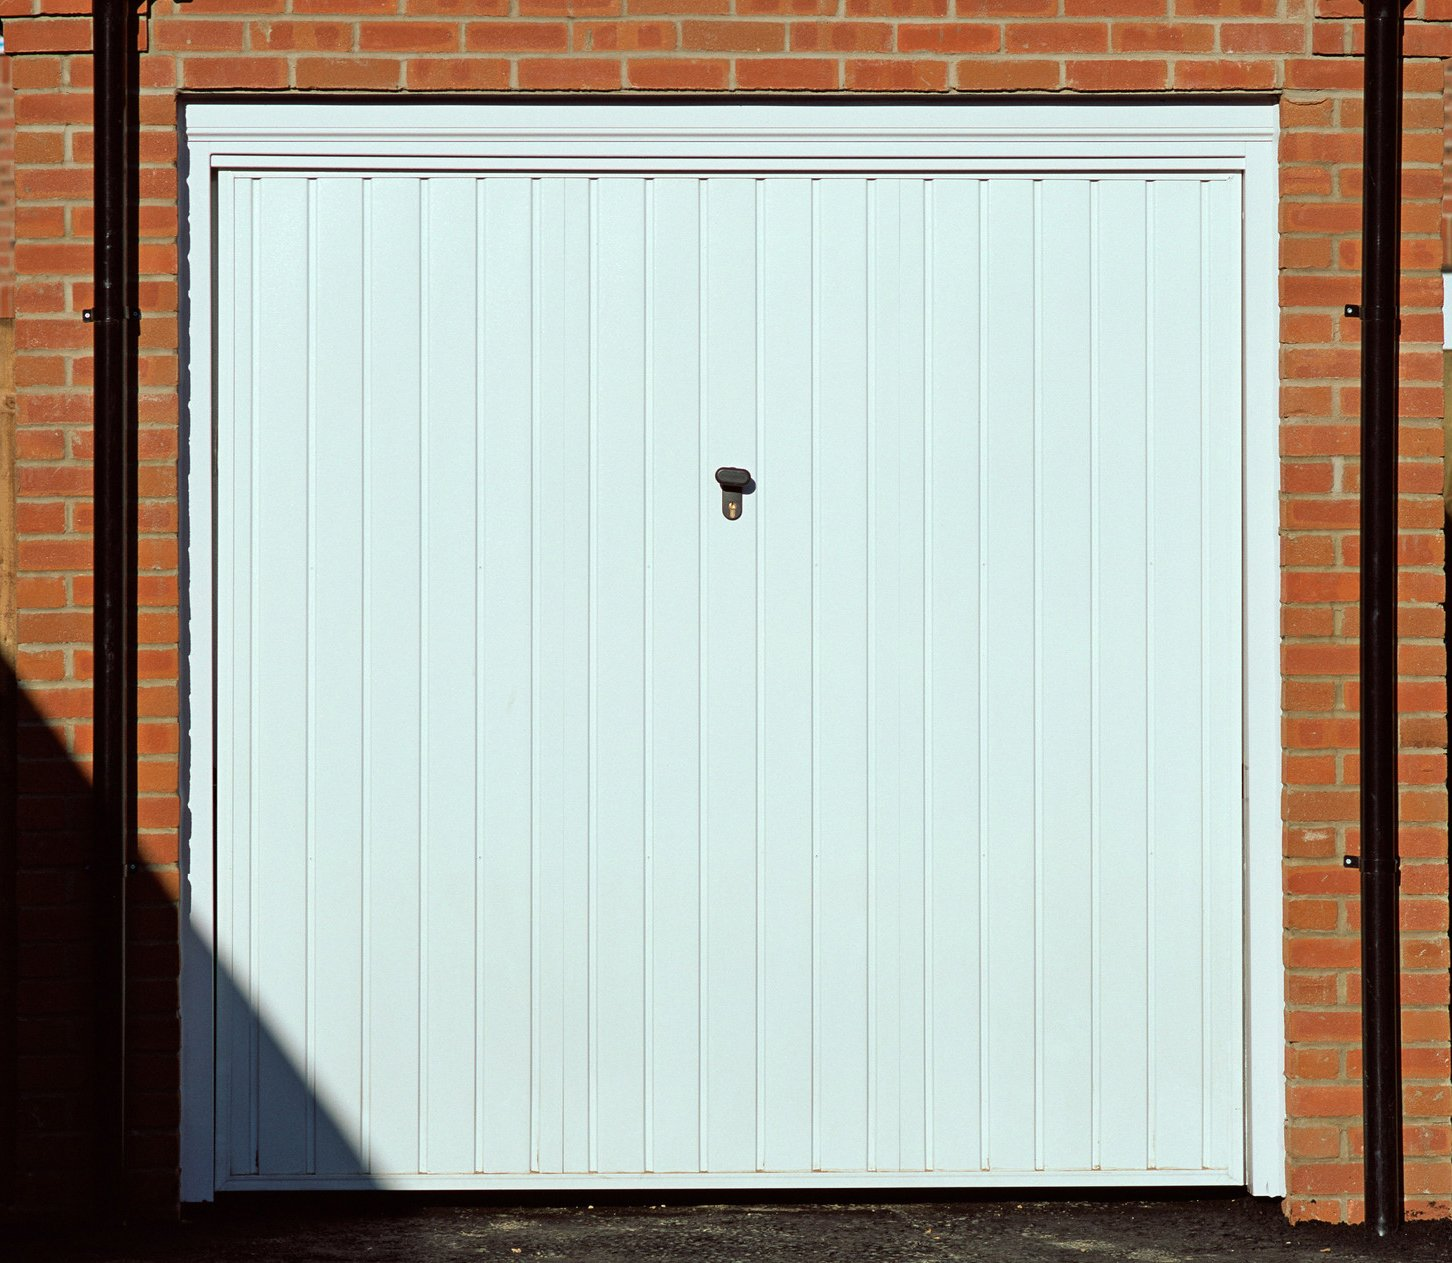 1113 #A24C29 Garage Door Repairs Feltham Surbiton & Kingston Local Garage Door  image Walton Garage Doors 38131280